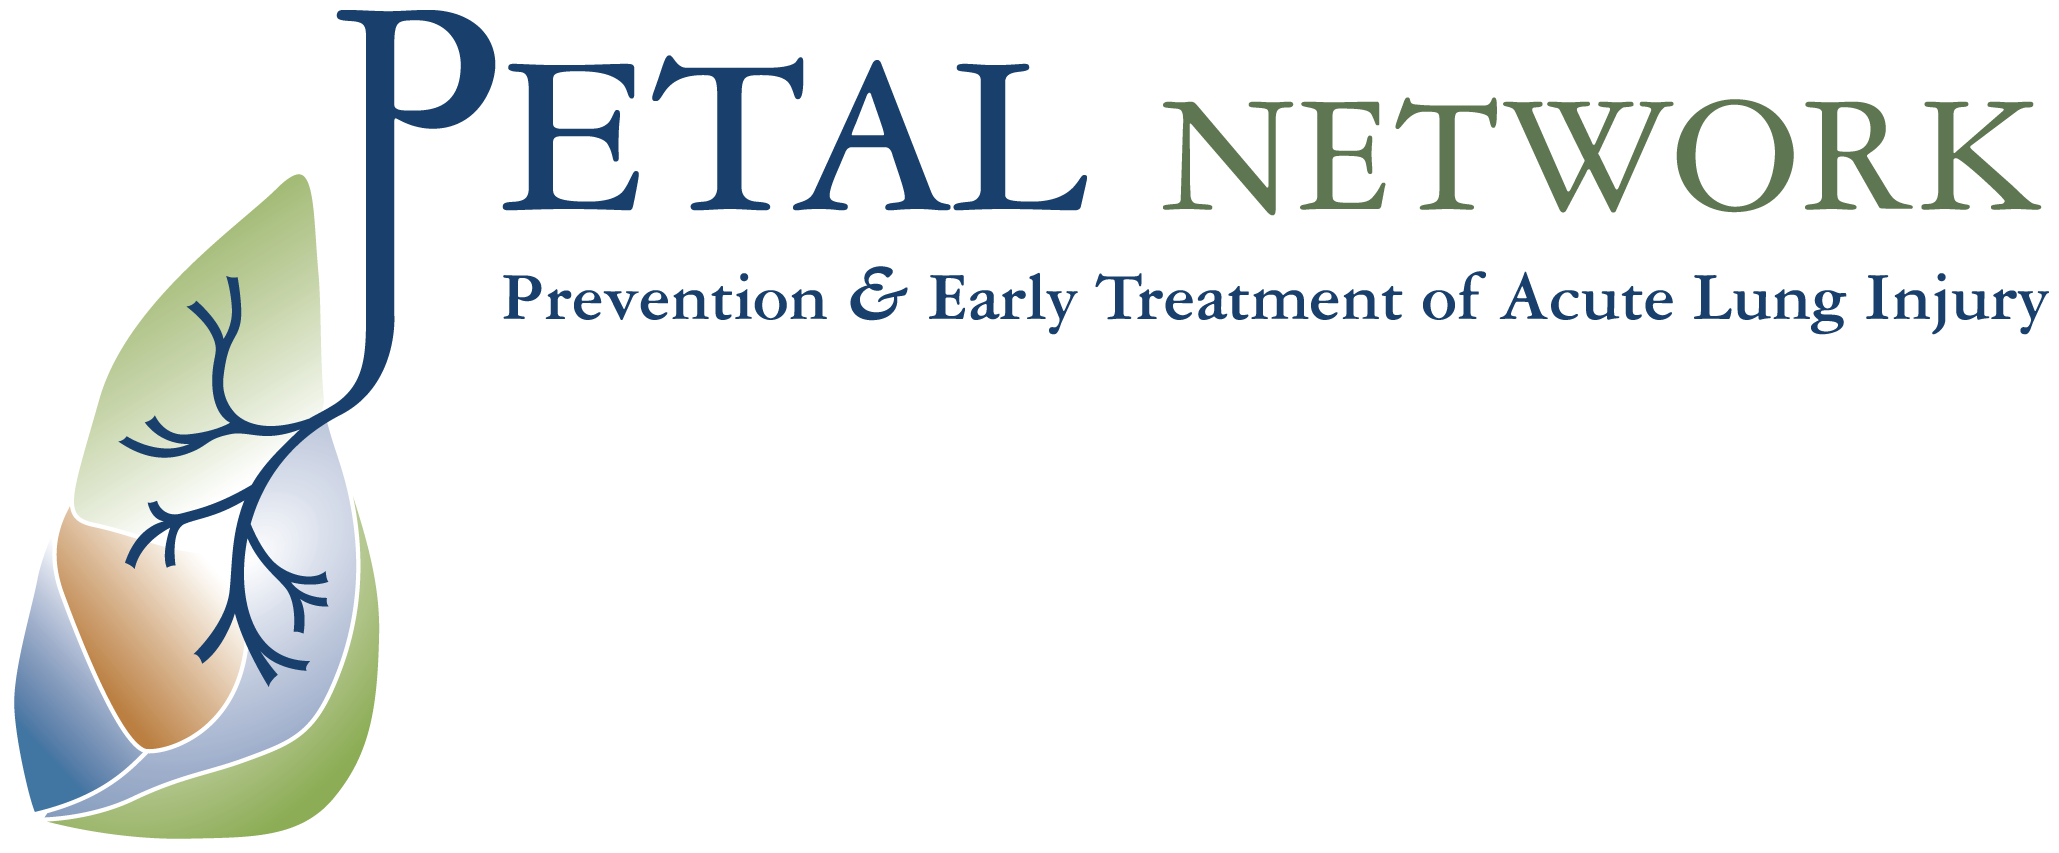 Petal Network – Prevention and Early Treatment of Acute Lung Injury